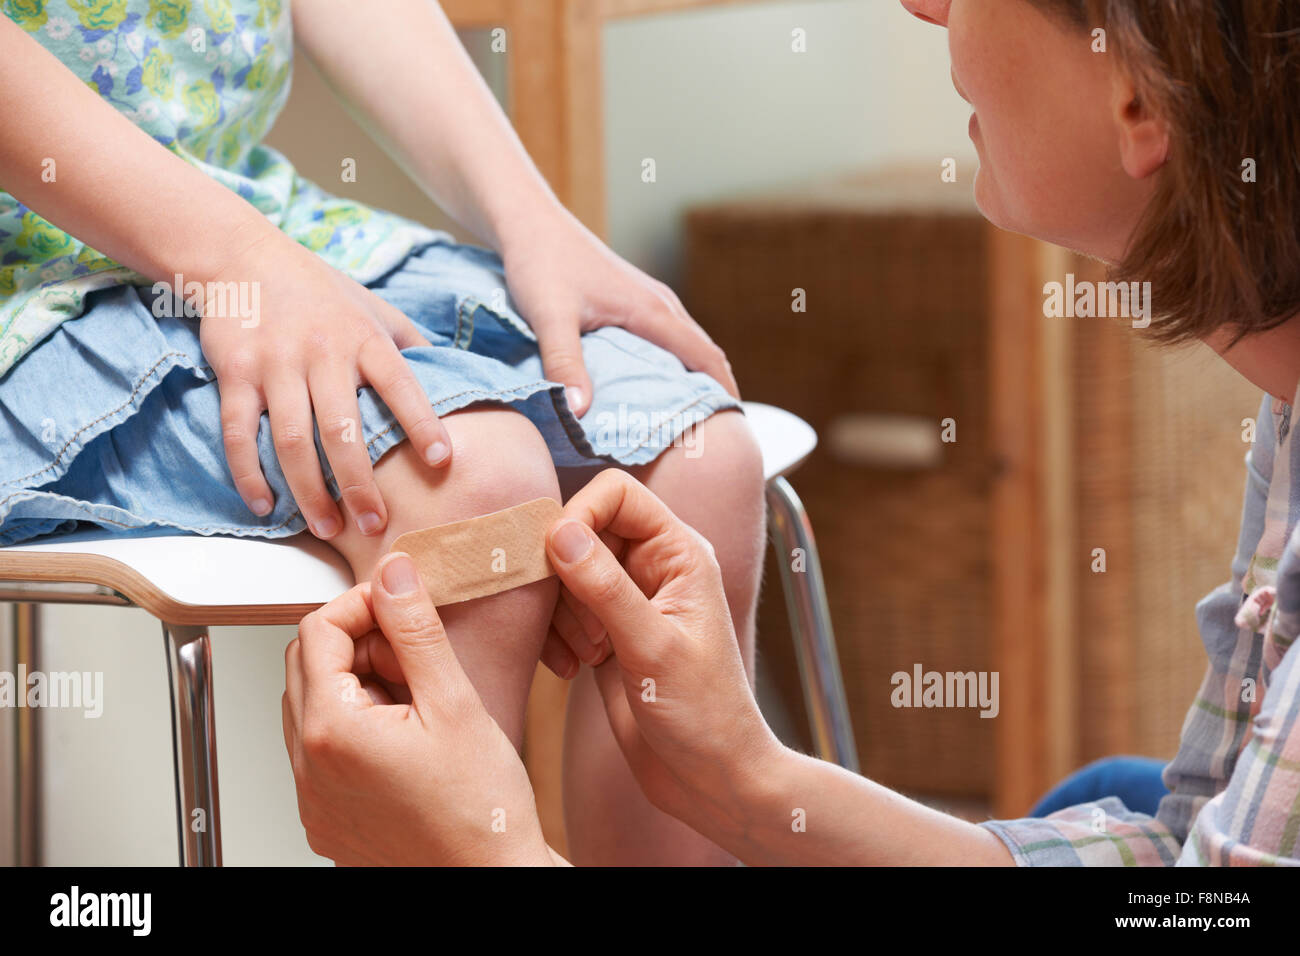 Mother Applying Adhesive Bandage To Daughter's Knee - Stock Image